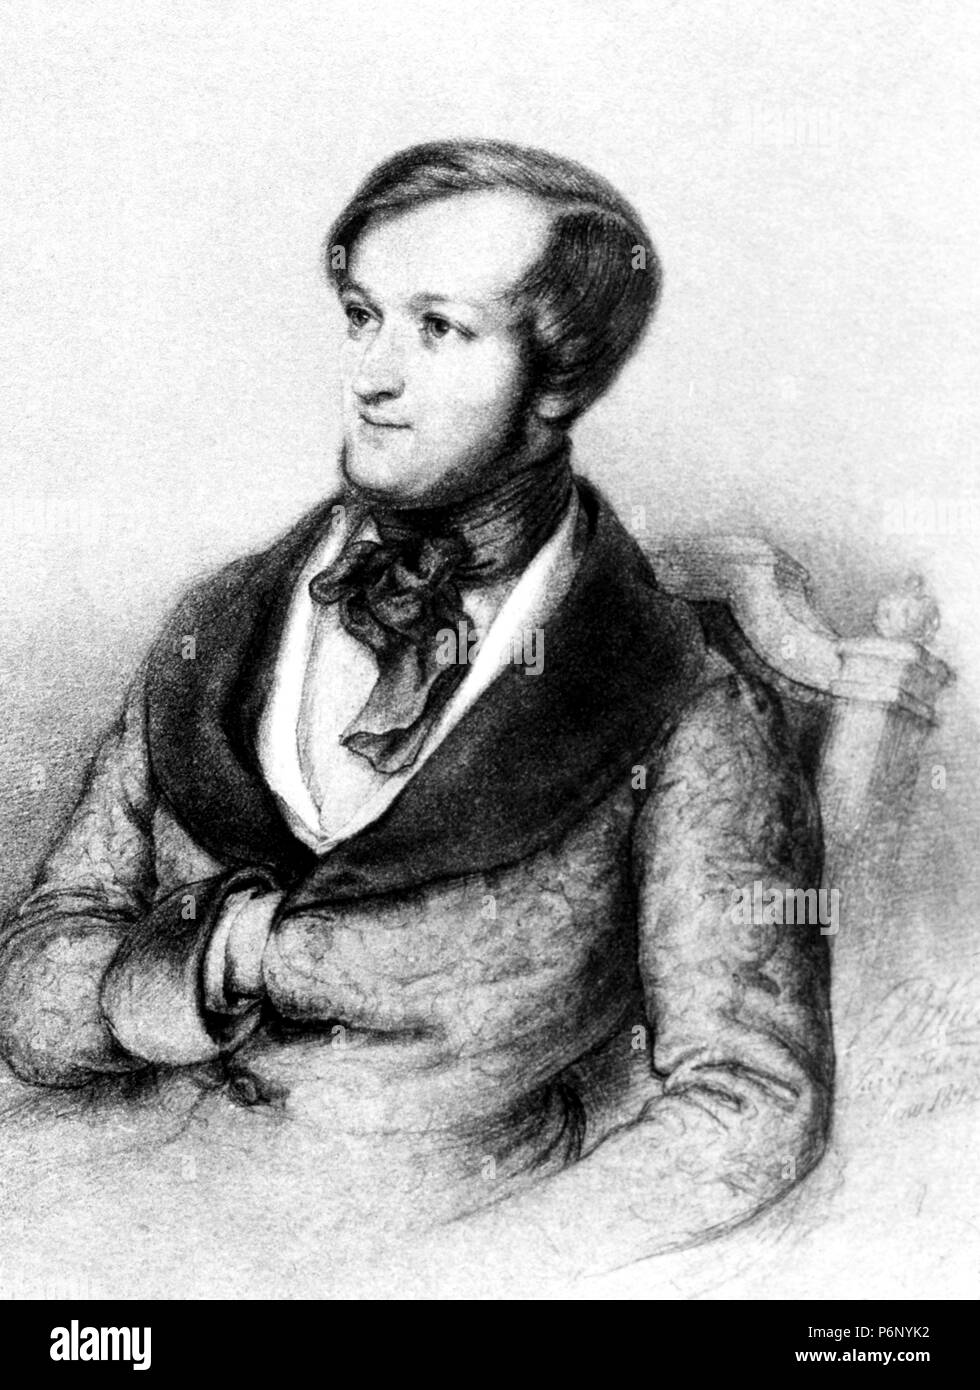 Richard Wagner in 1842 (from a portrait by E. Kietz). - Stock Image